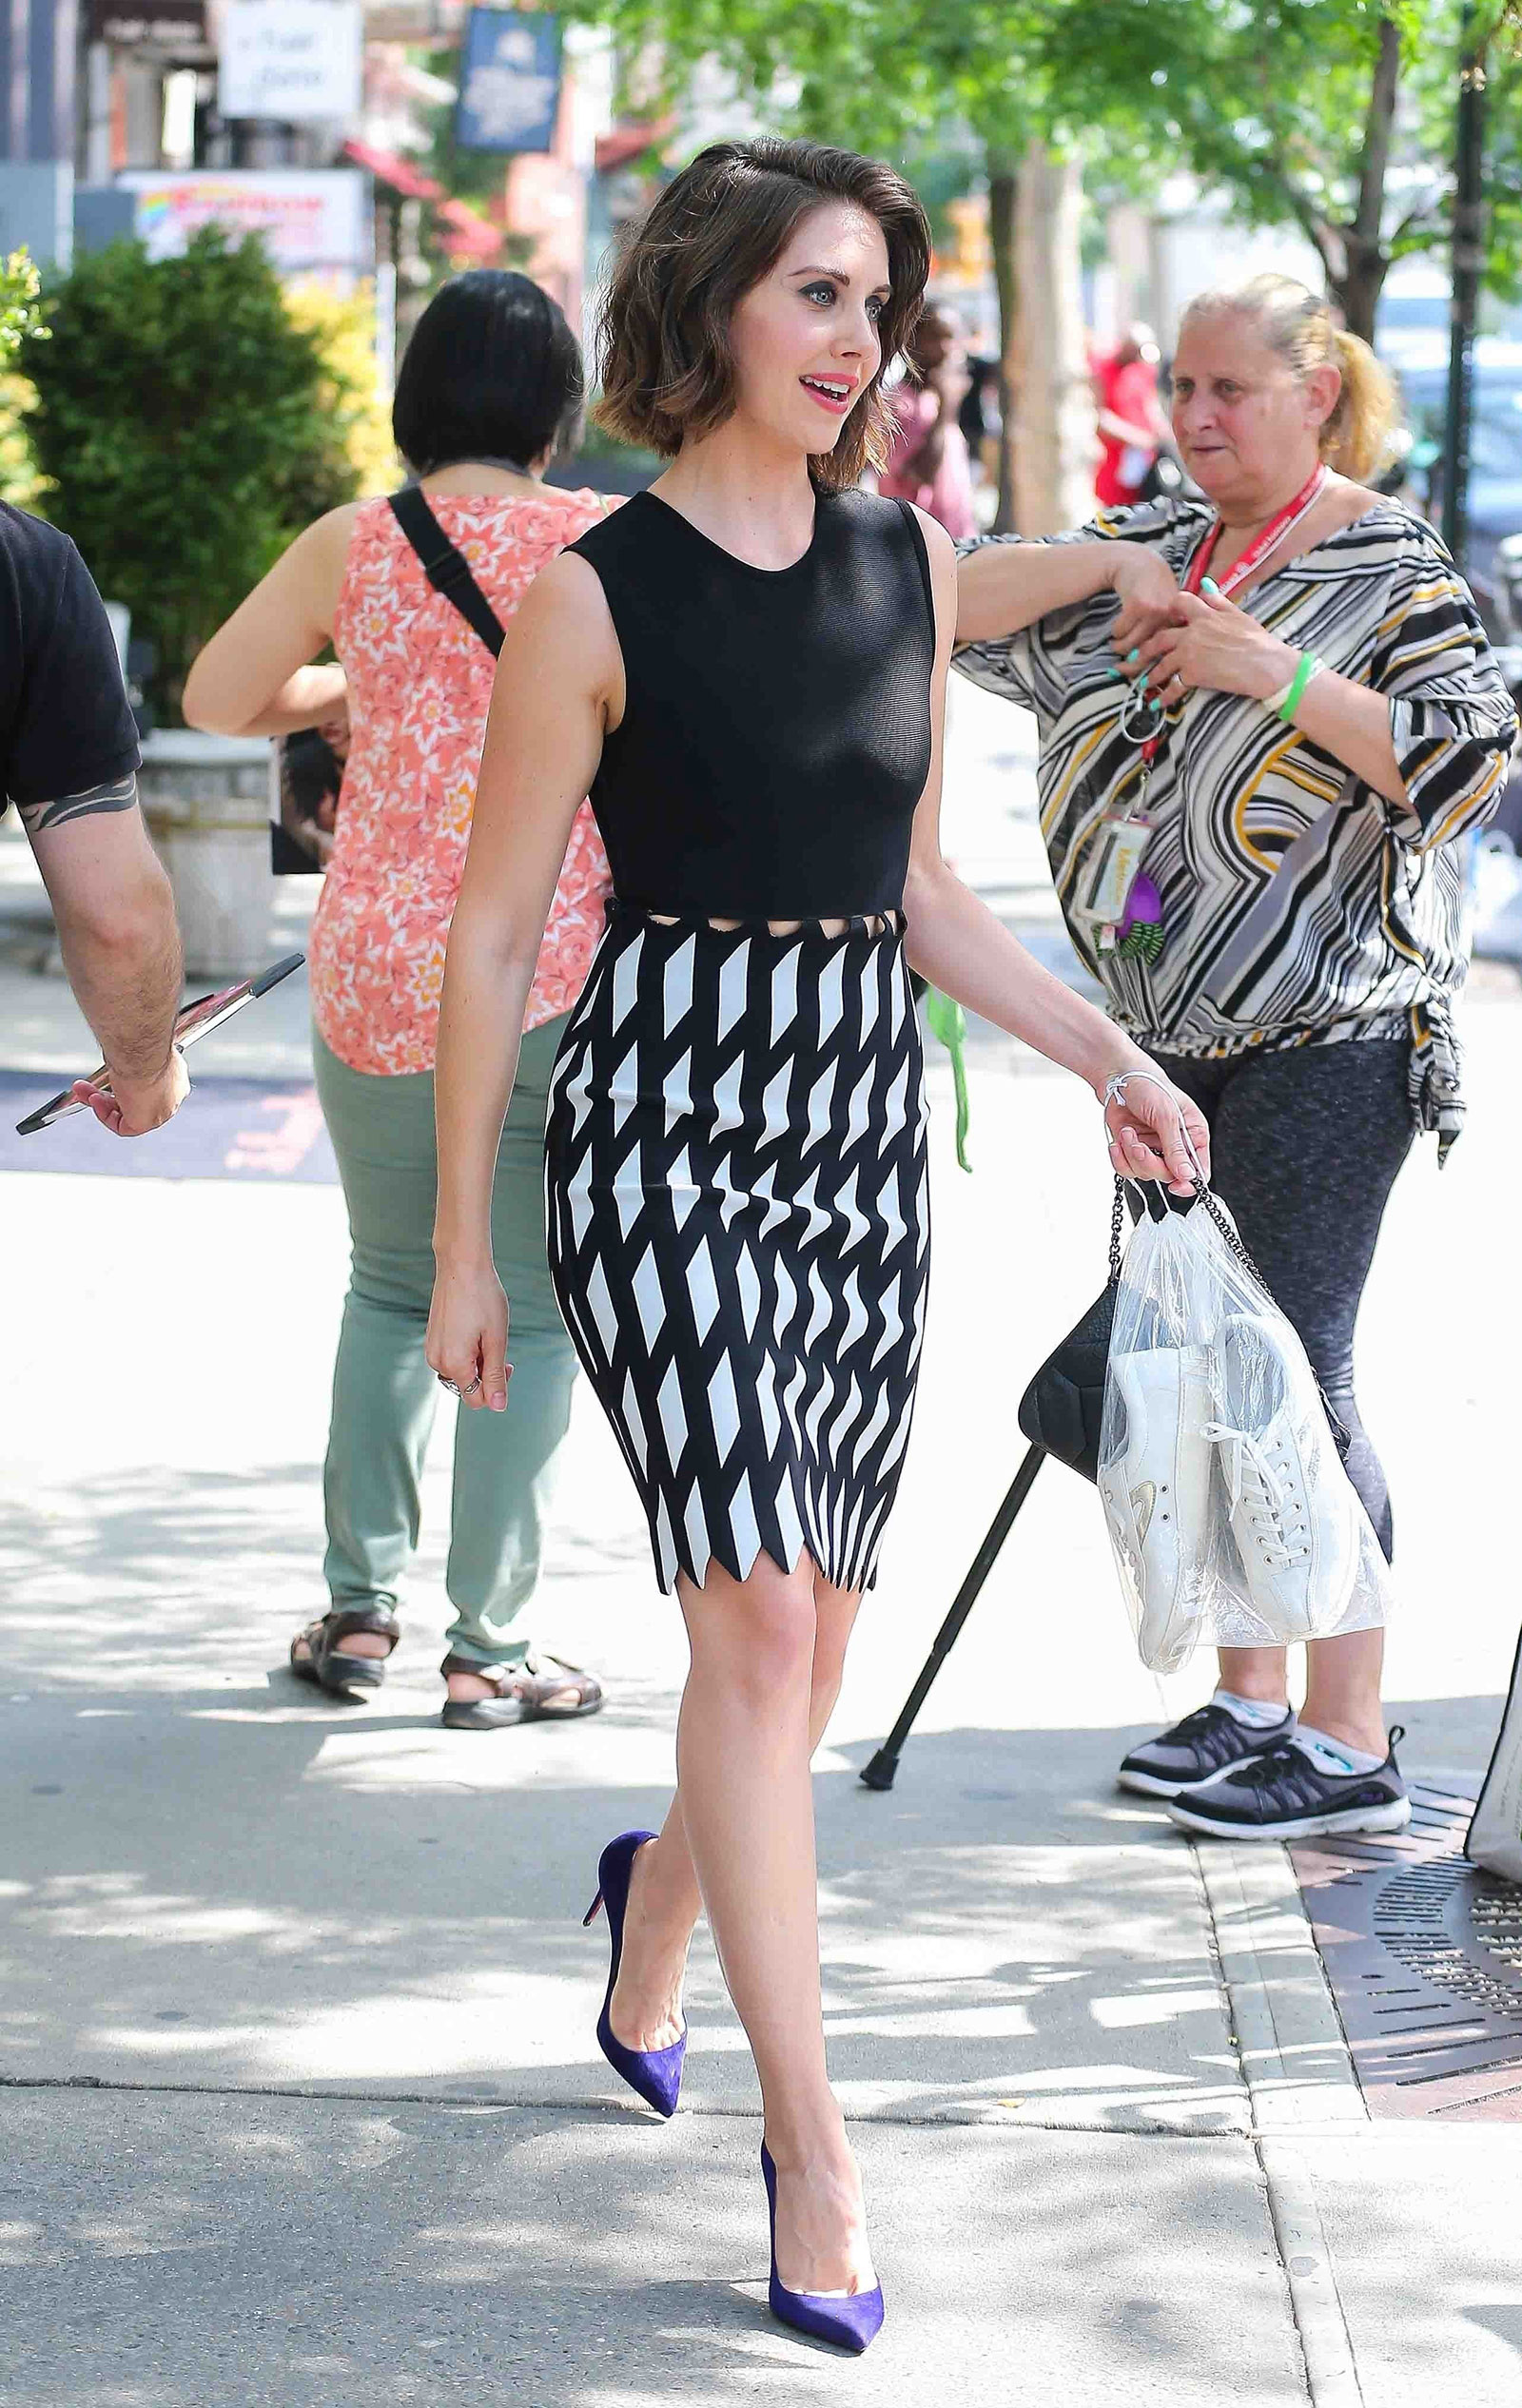 Alison Brie from Mad Men looks chic for summer in a black and white print pencil skirt.